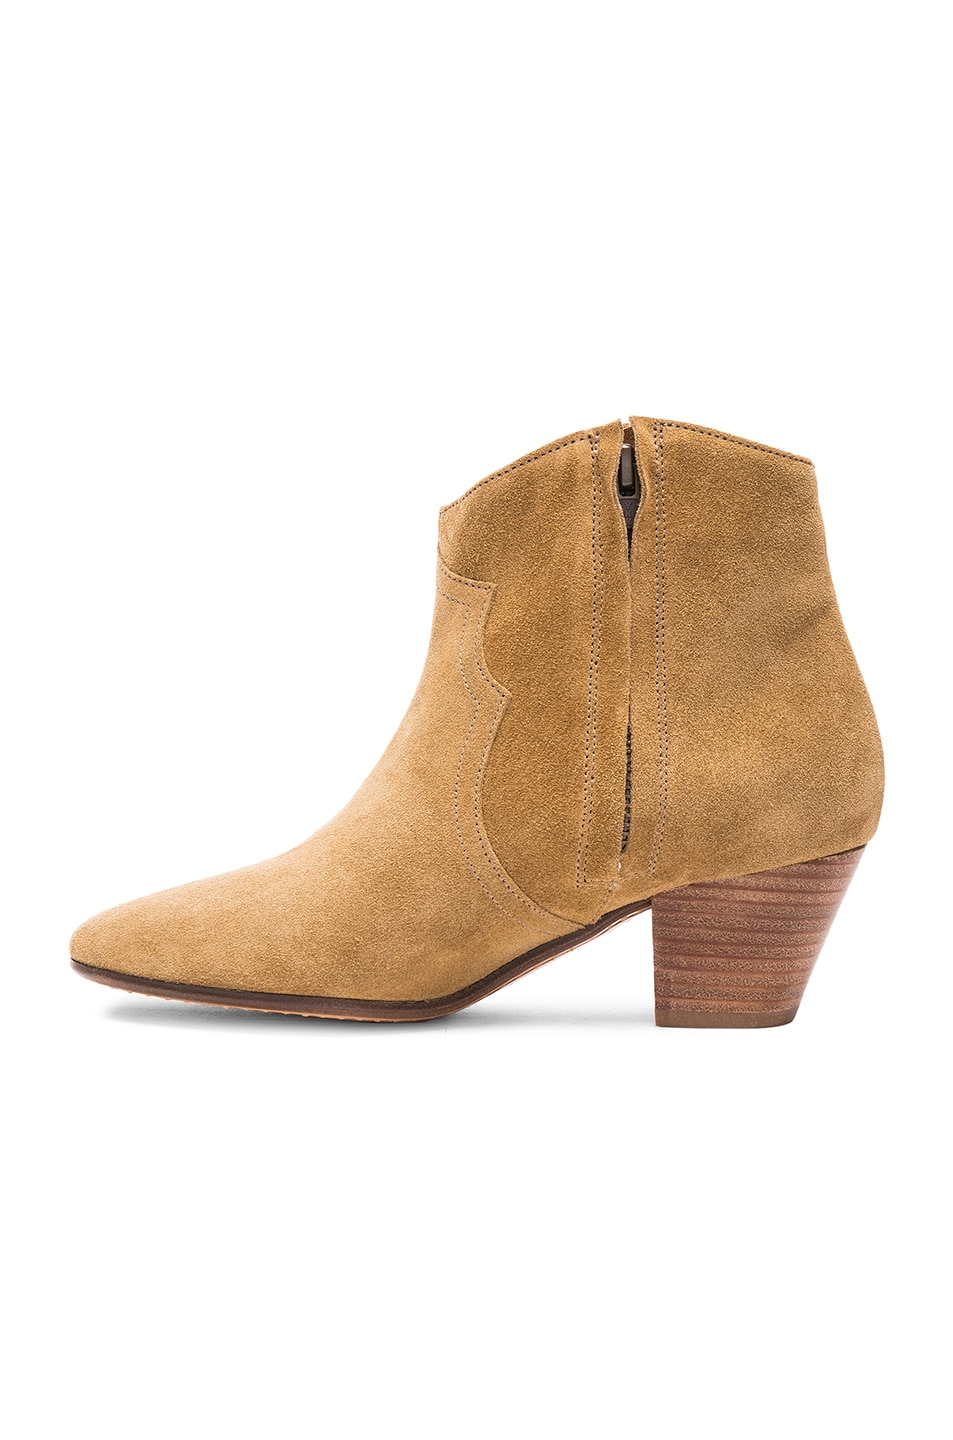 Image 5 of Isabel Marant Dicker Velvet Booties in Camel